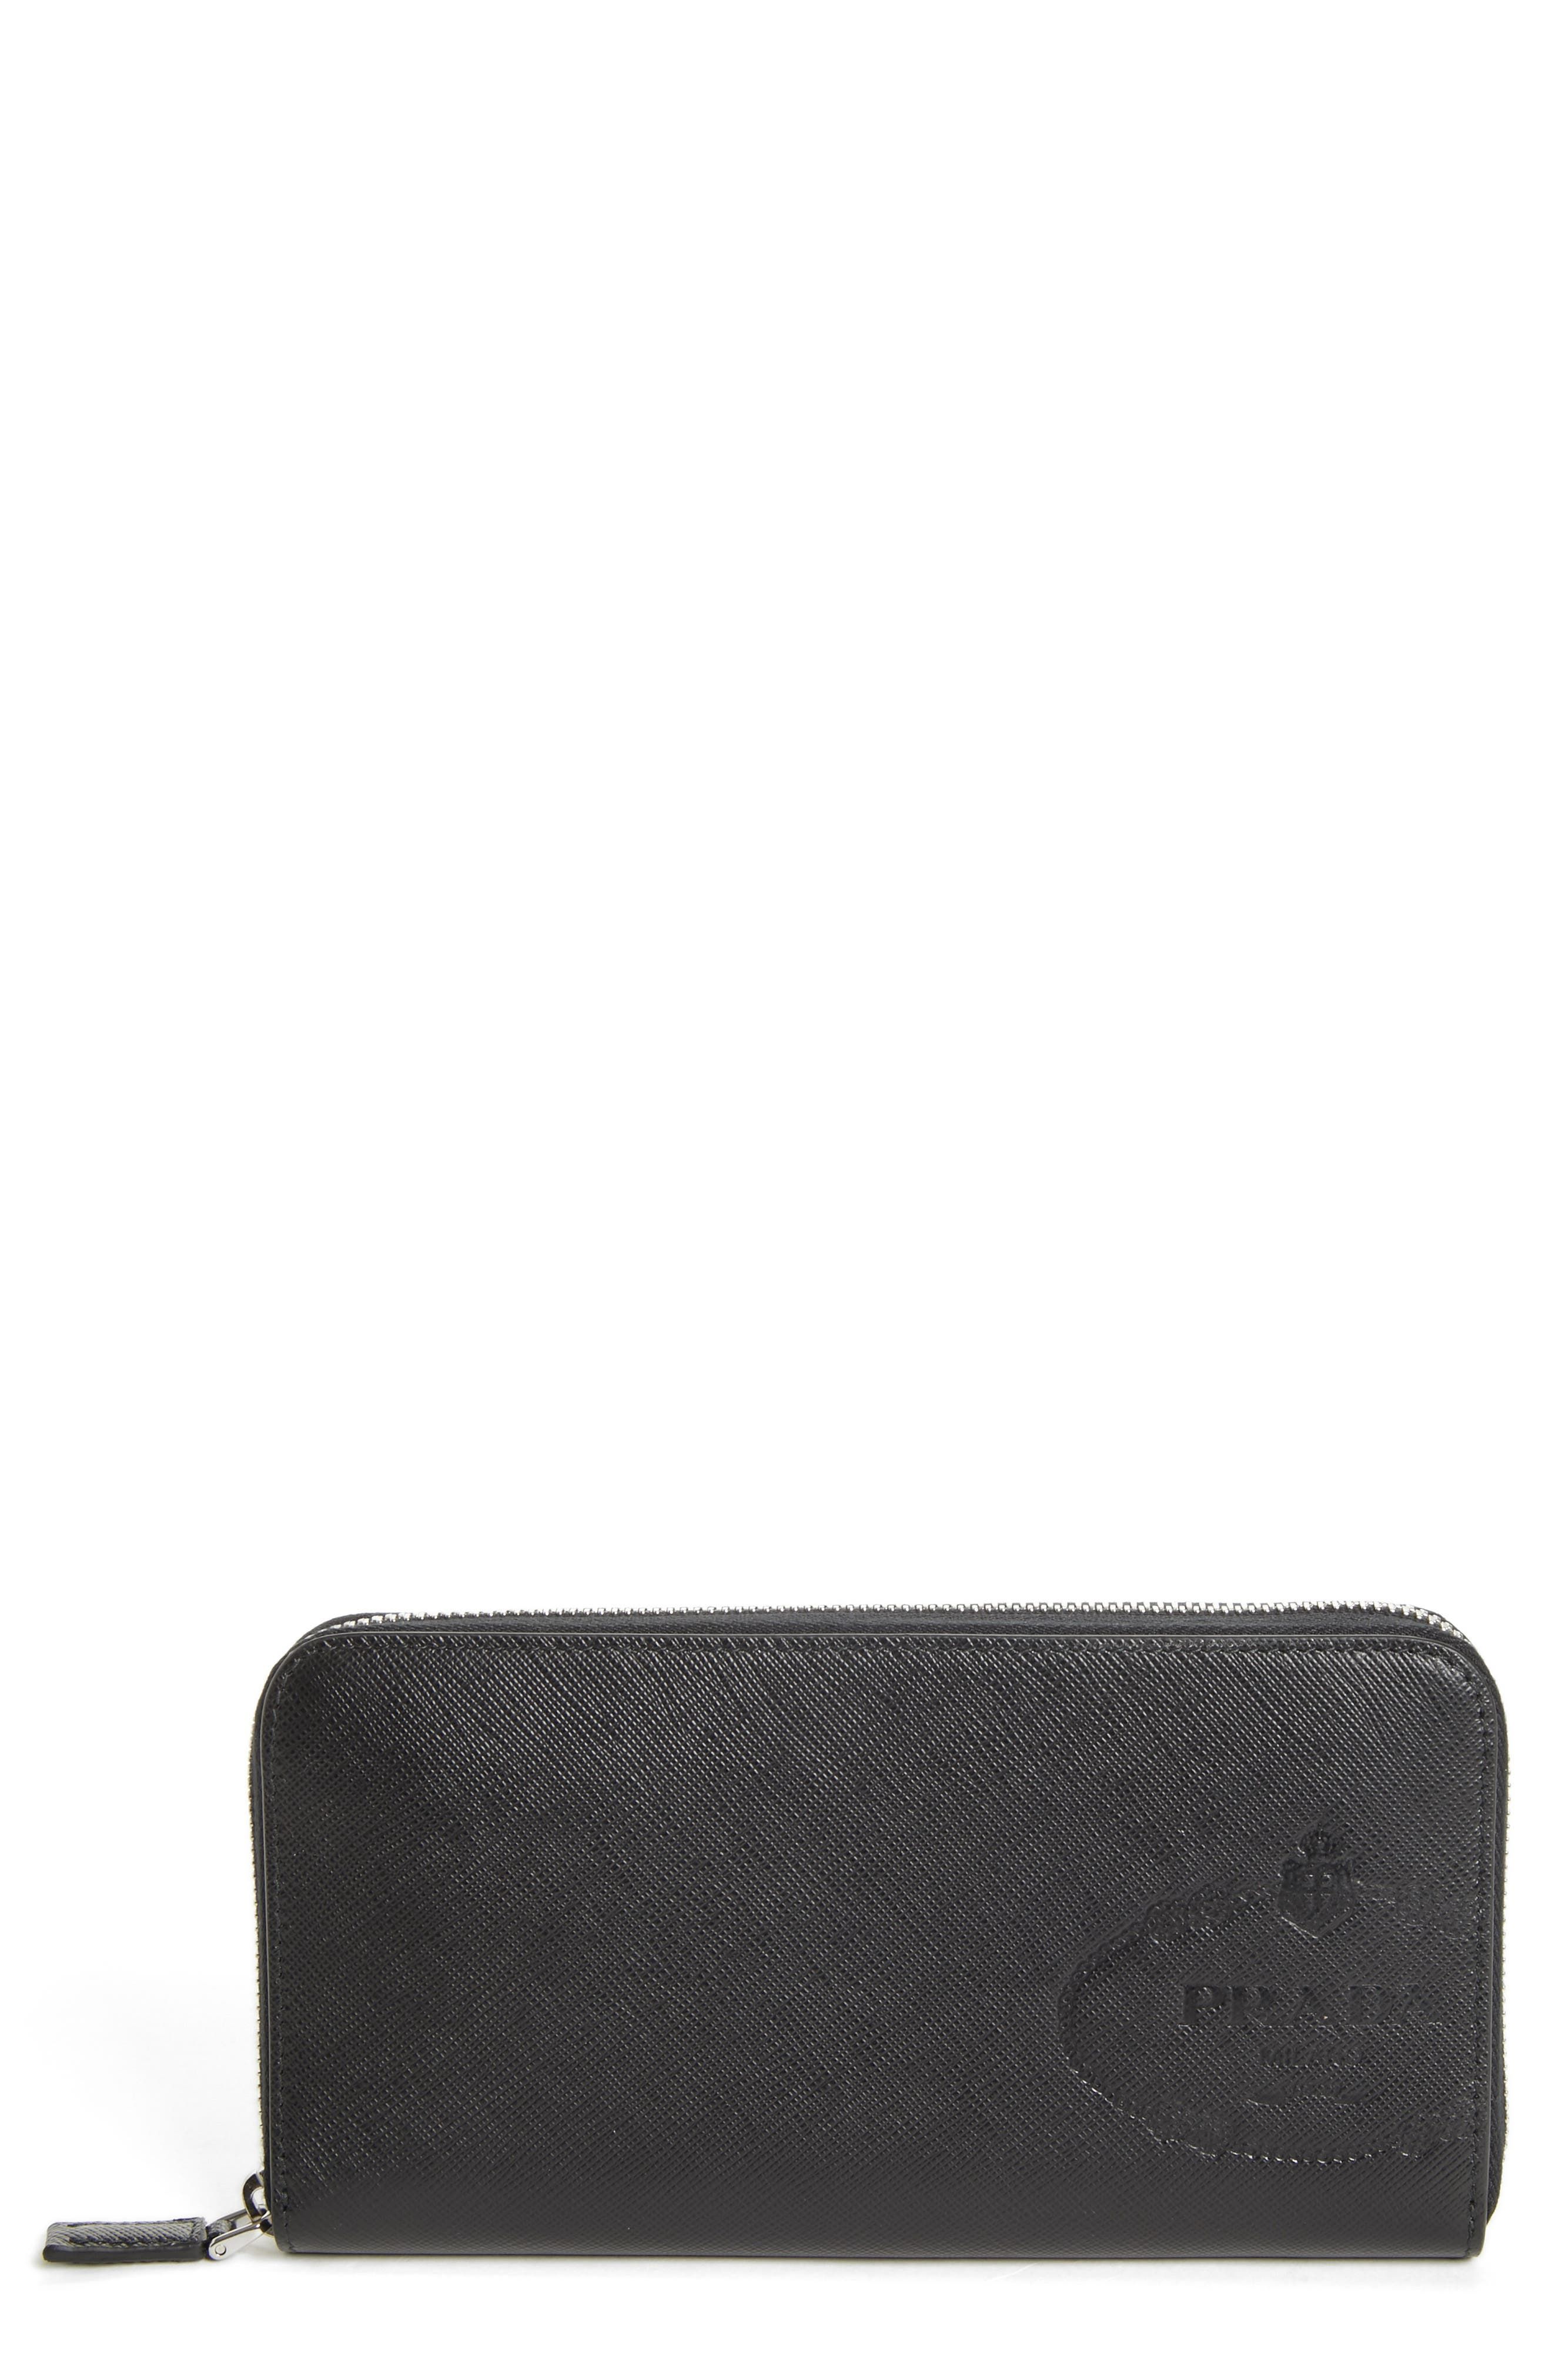 Long Zip Around Saffiano Leather Wallet,                         Main,                         color, BLACK